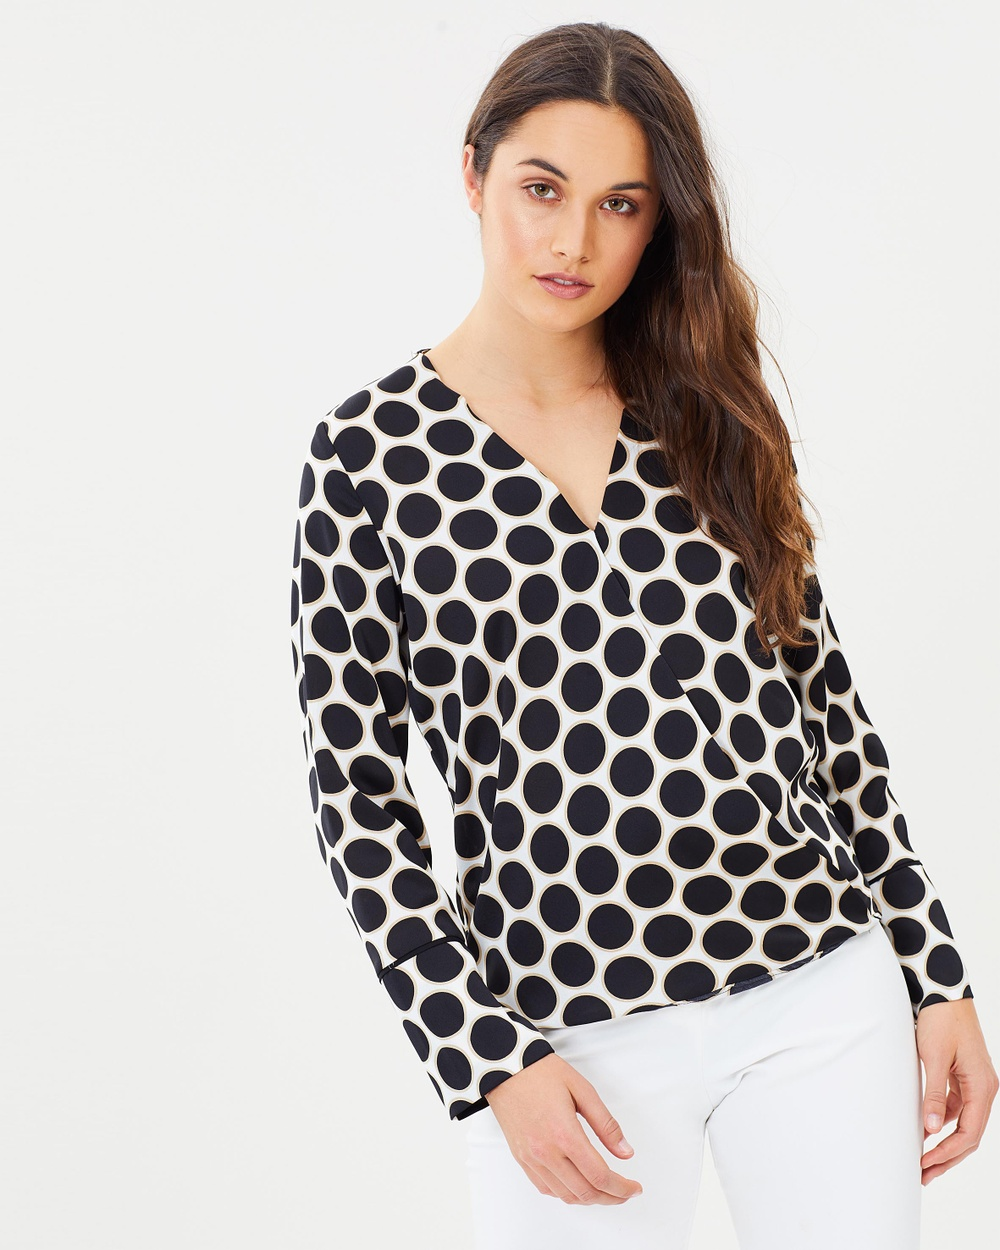 Wallis Halo Spot Fluted Sleeve Top Tops Black & White Halo Spot Fluted Sleeve Top